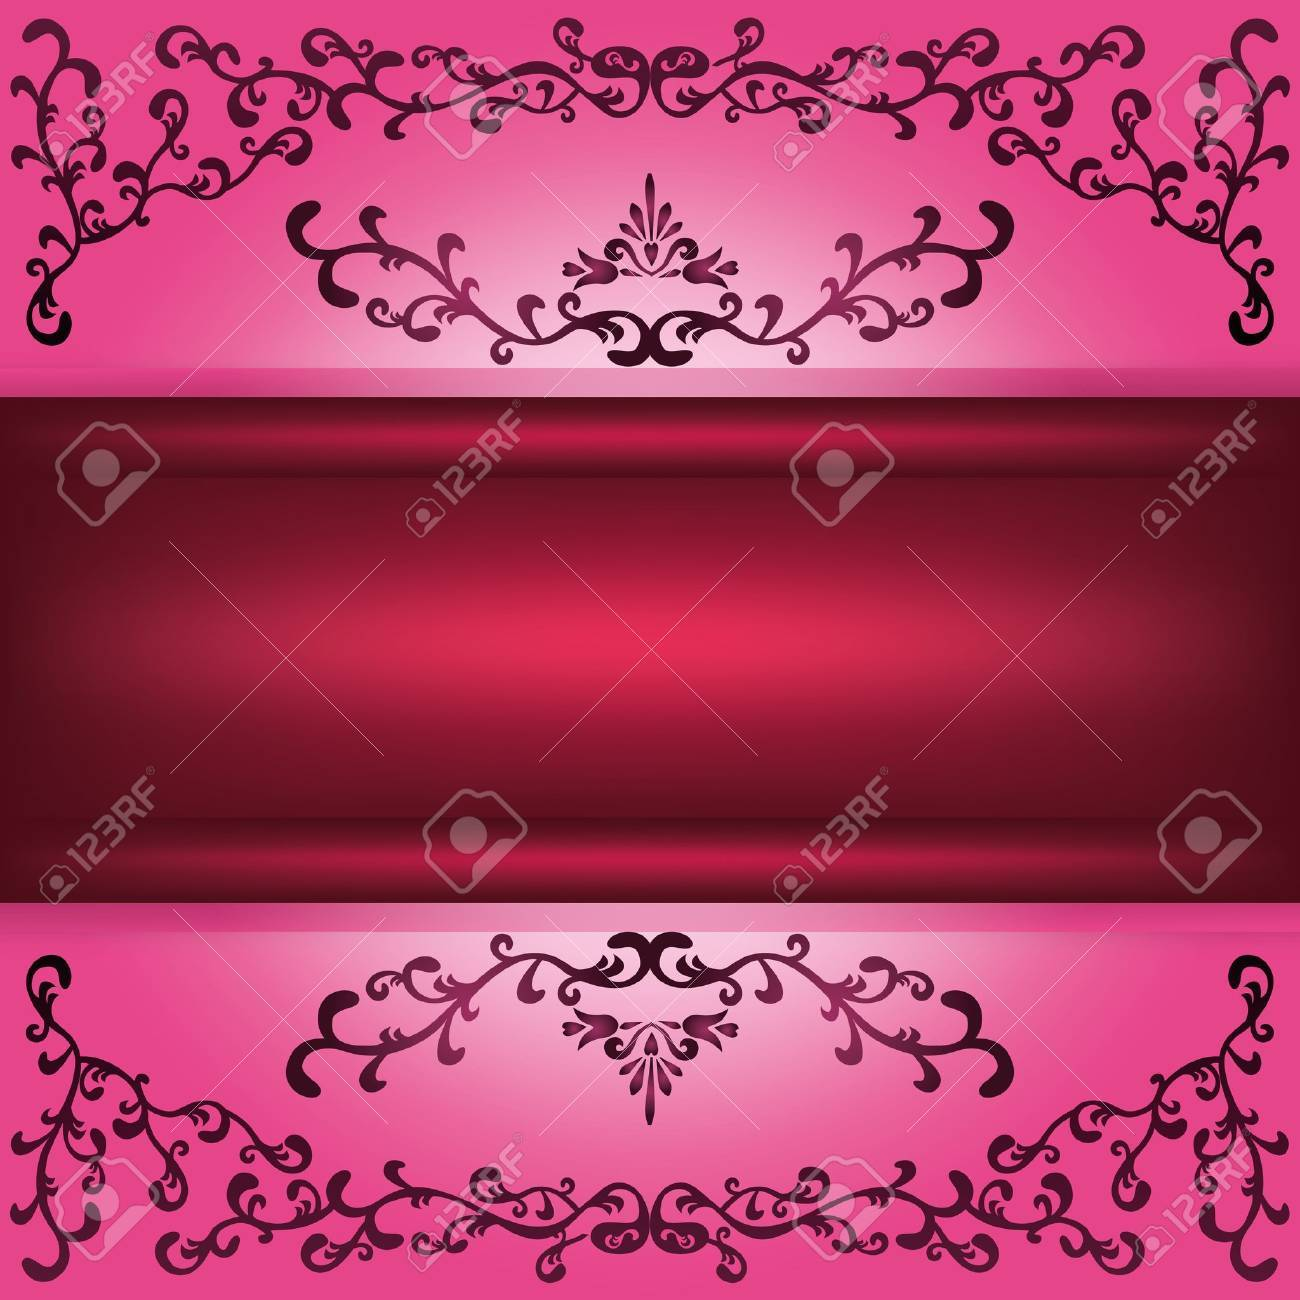 Background with decorative ornament and place for text Stock Vector - 13334260